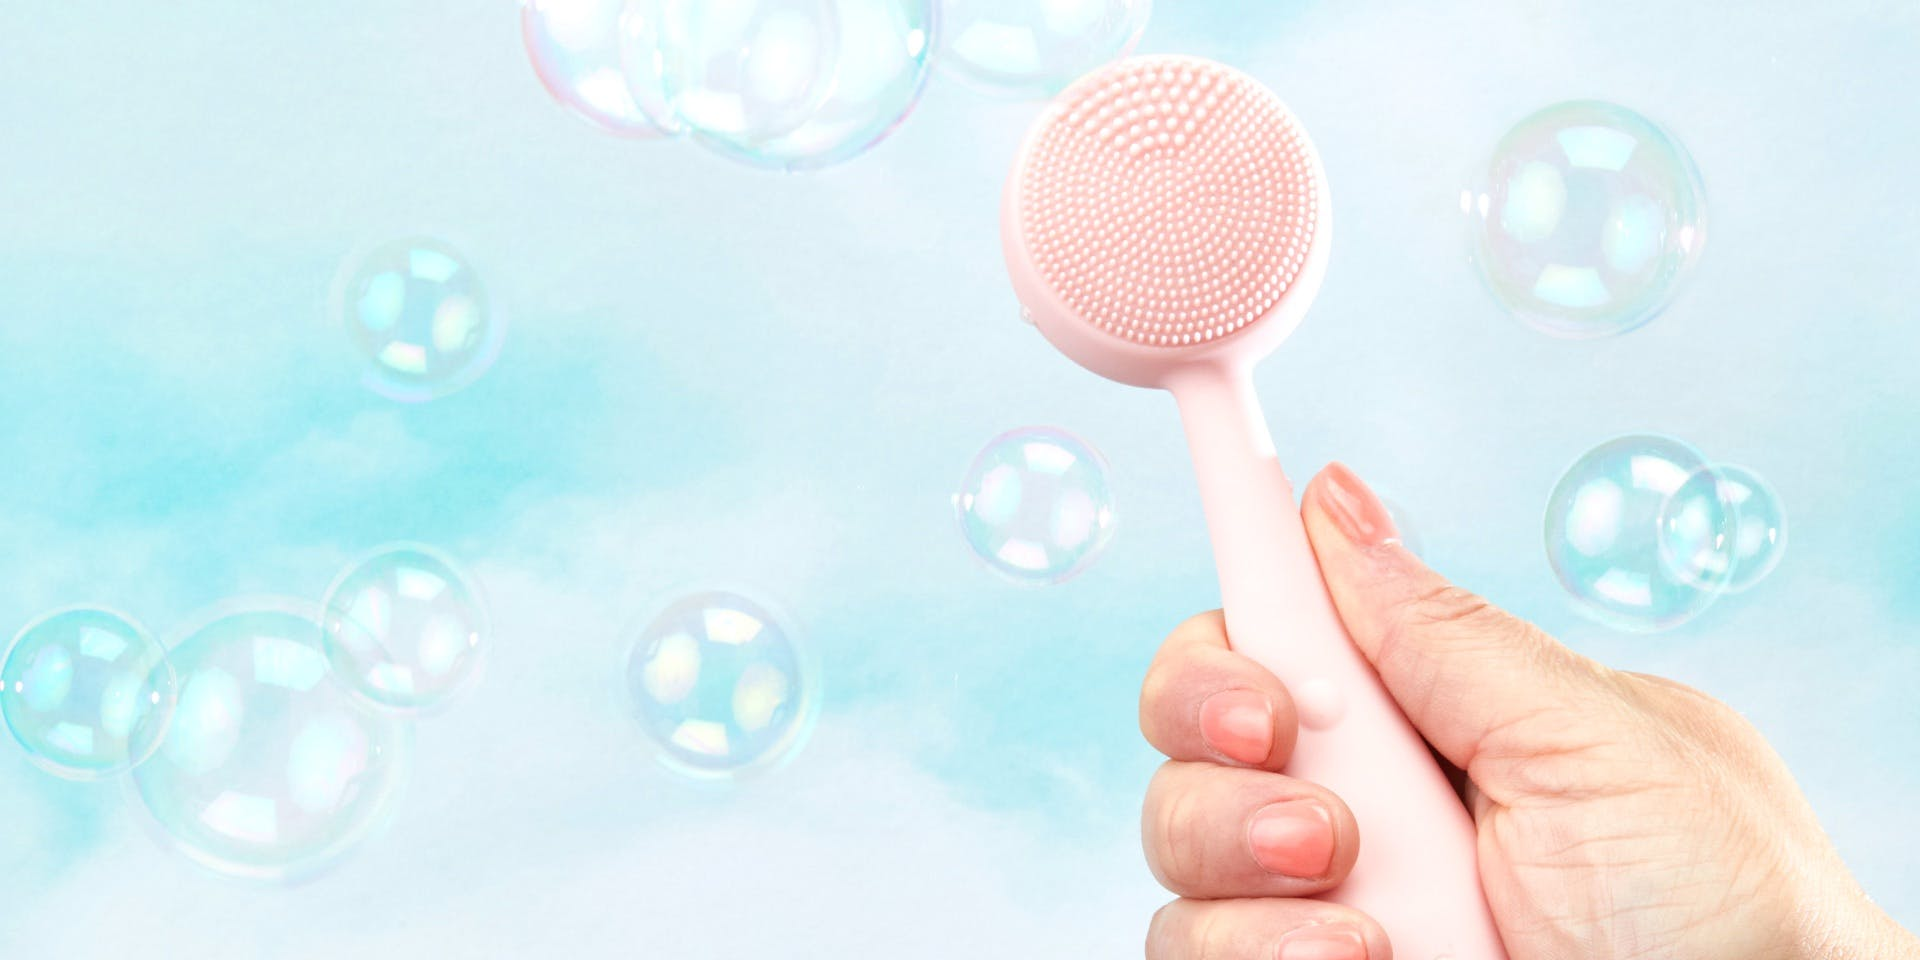 Woman holding PMD clean in hand with bubbles